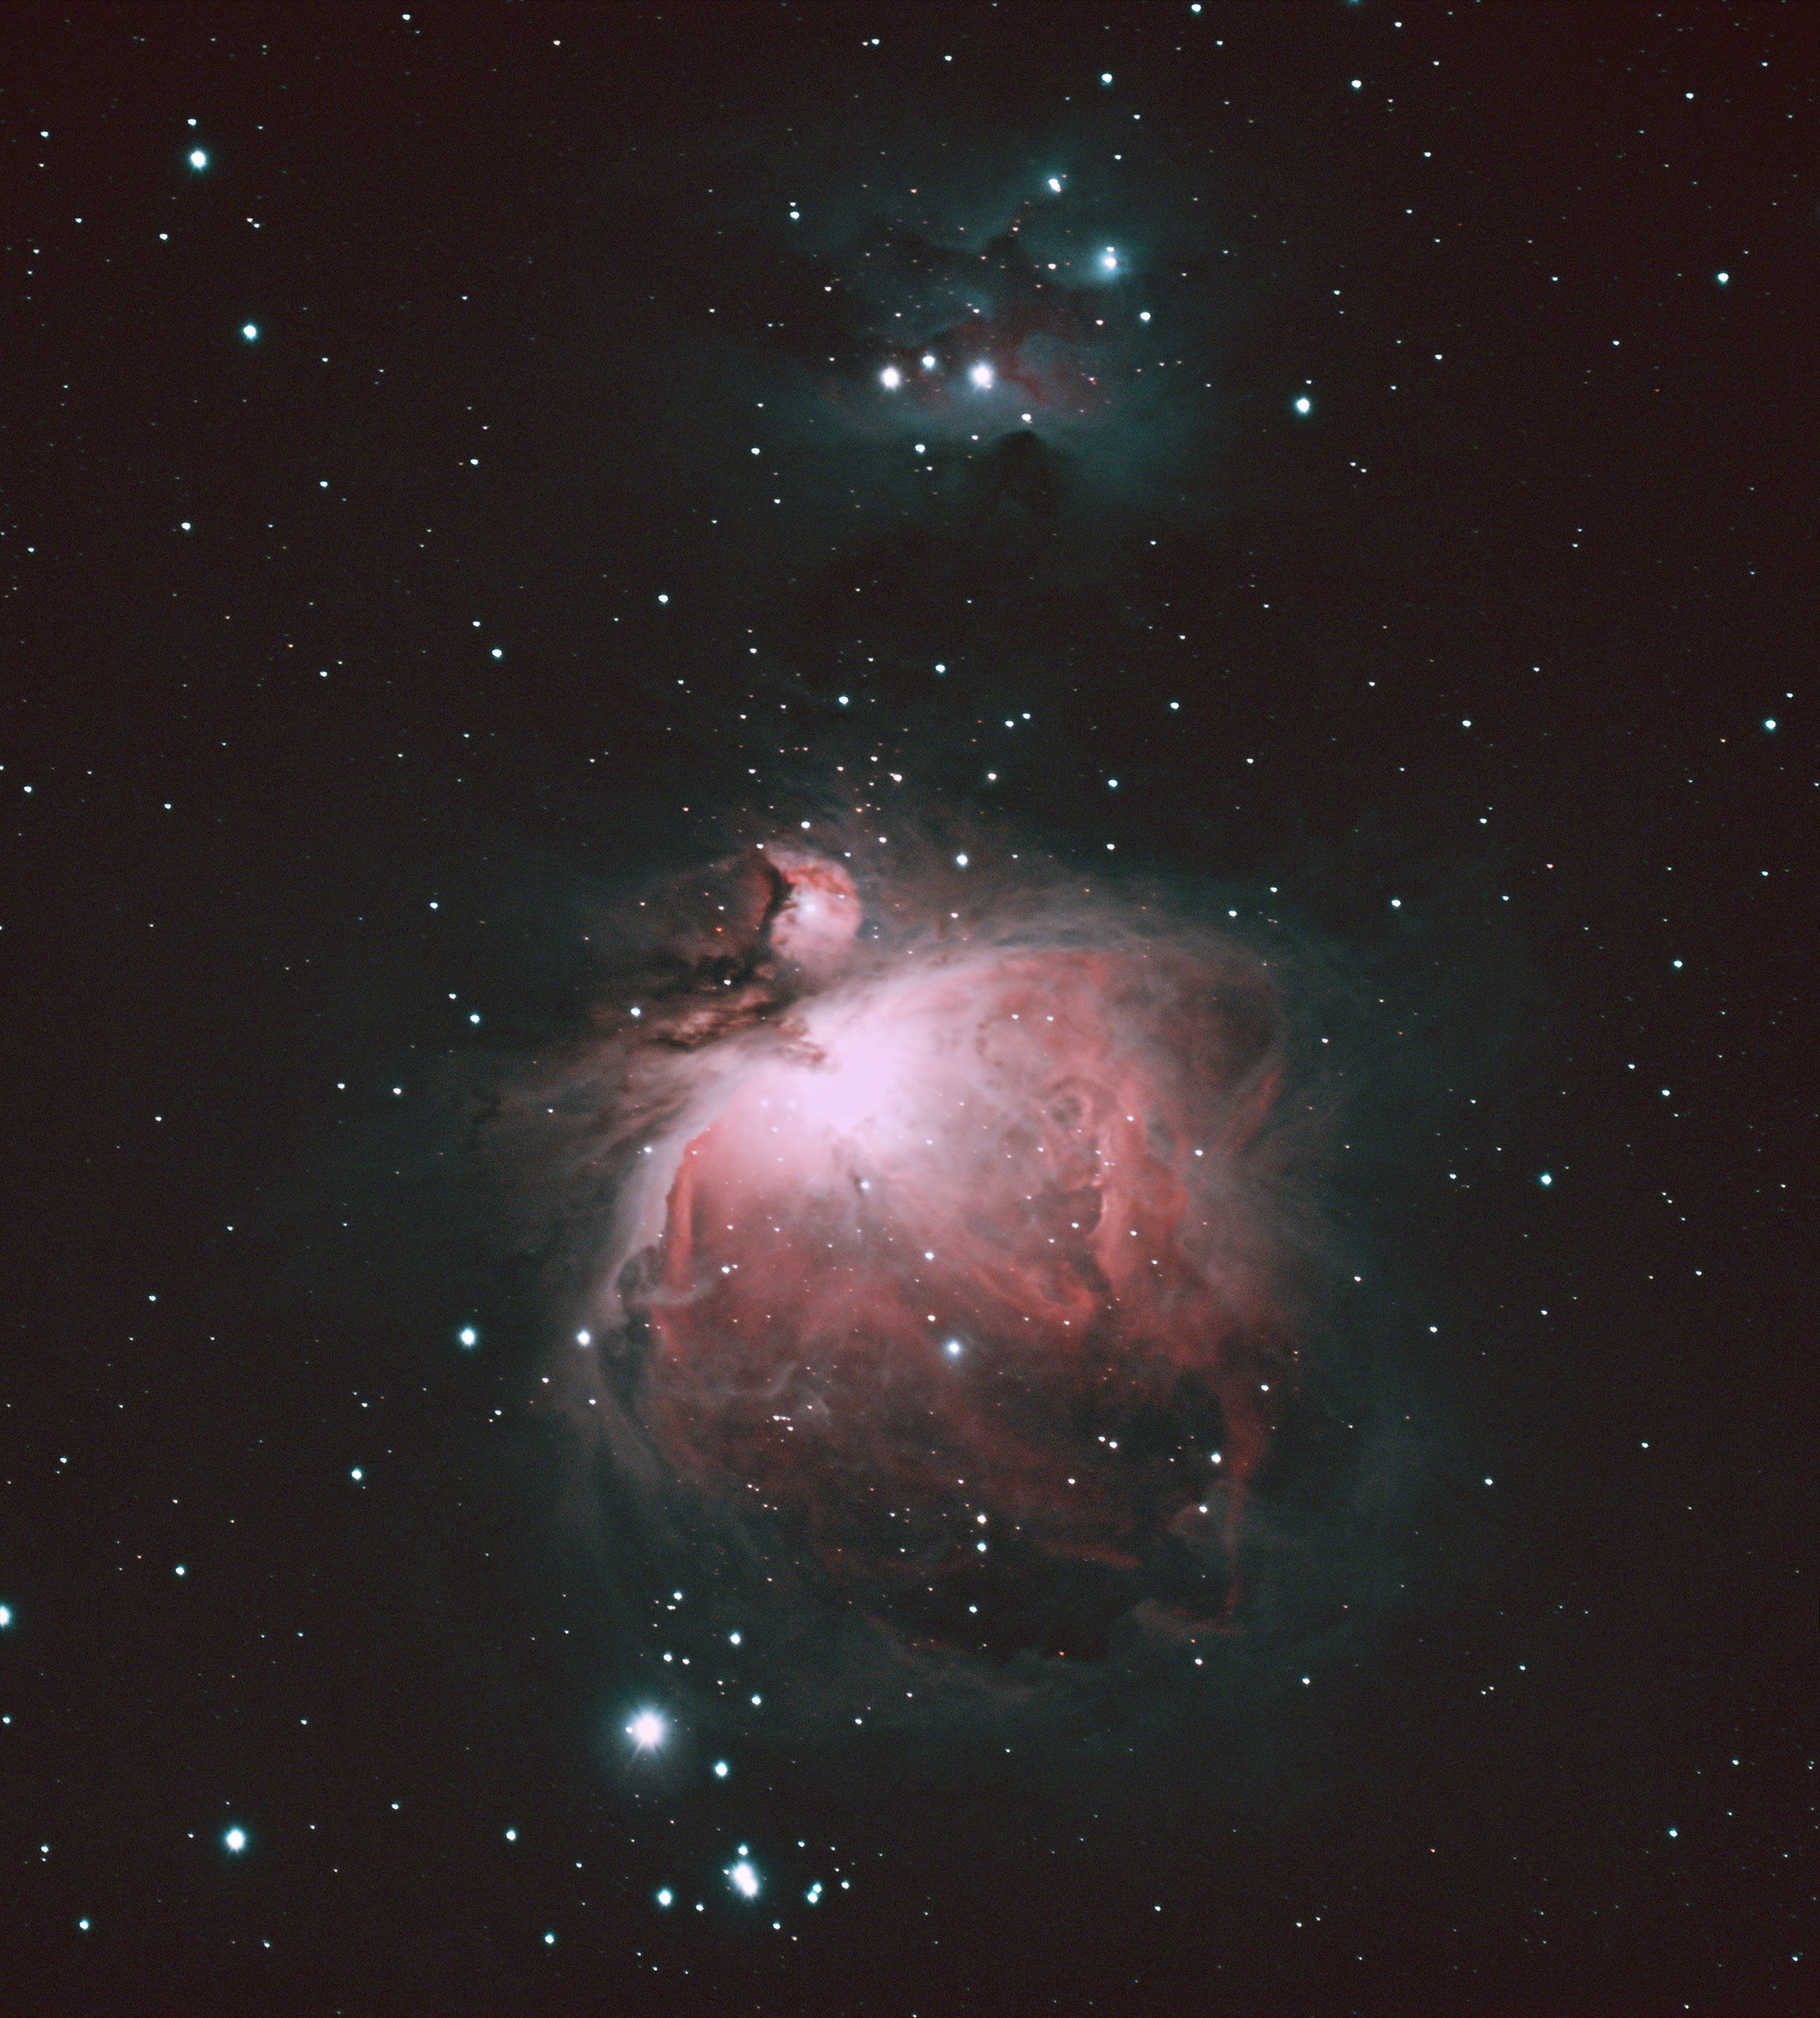 M42 the Orion Nebula. At the center of the bright area is the Trapezium Cluster. Credit: Mike Barrett